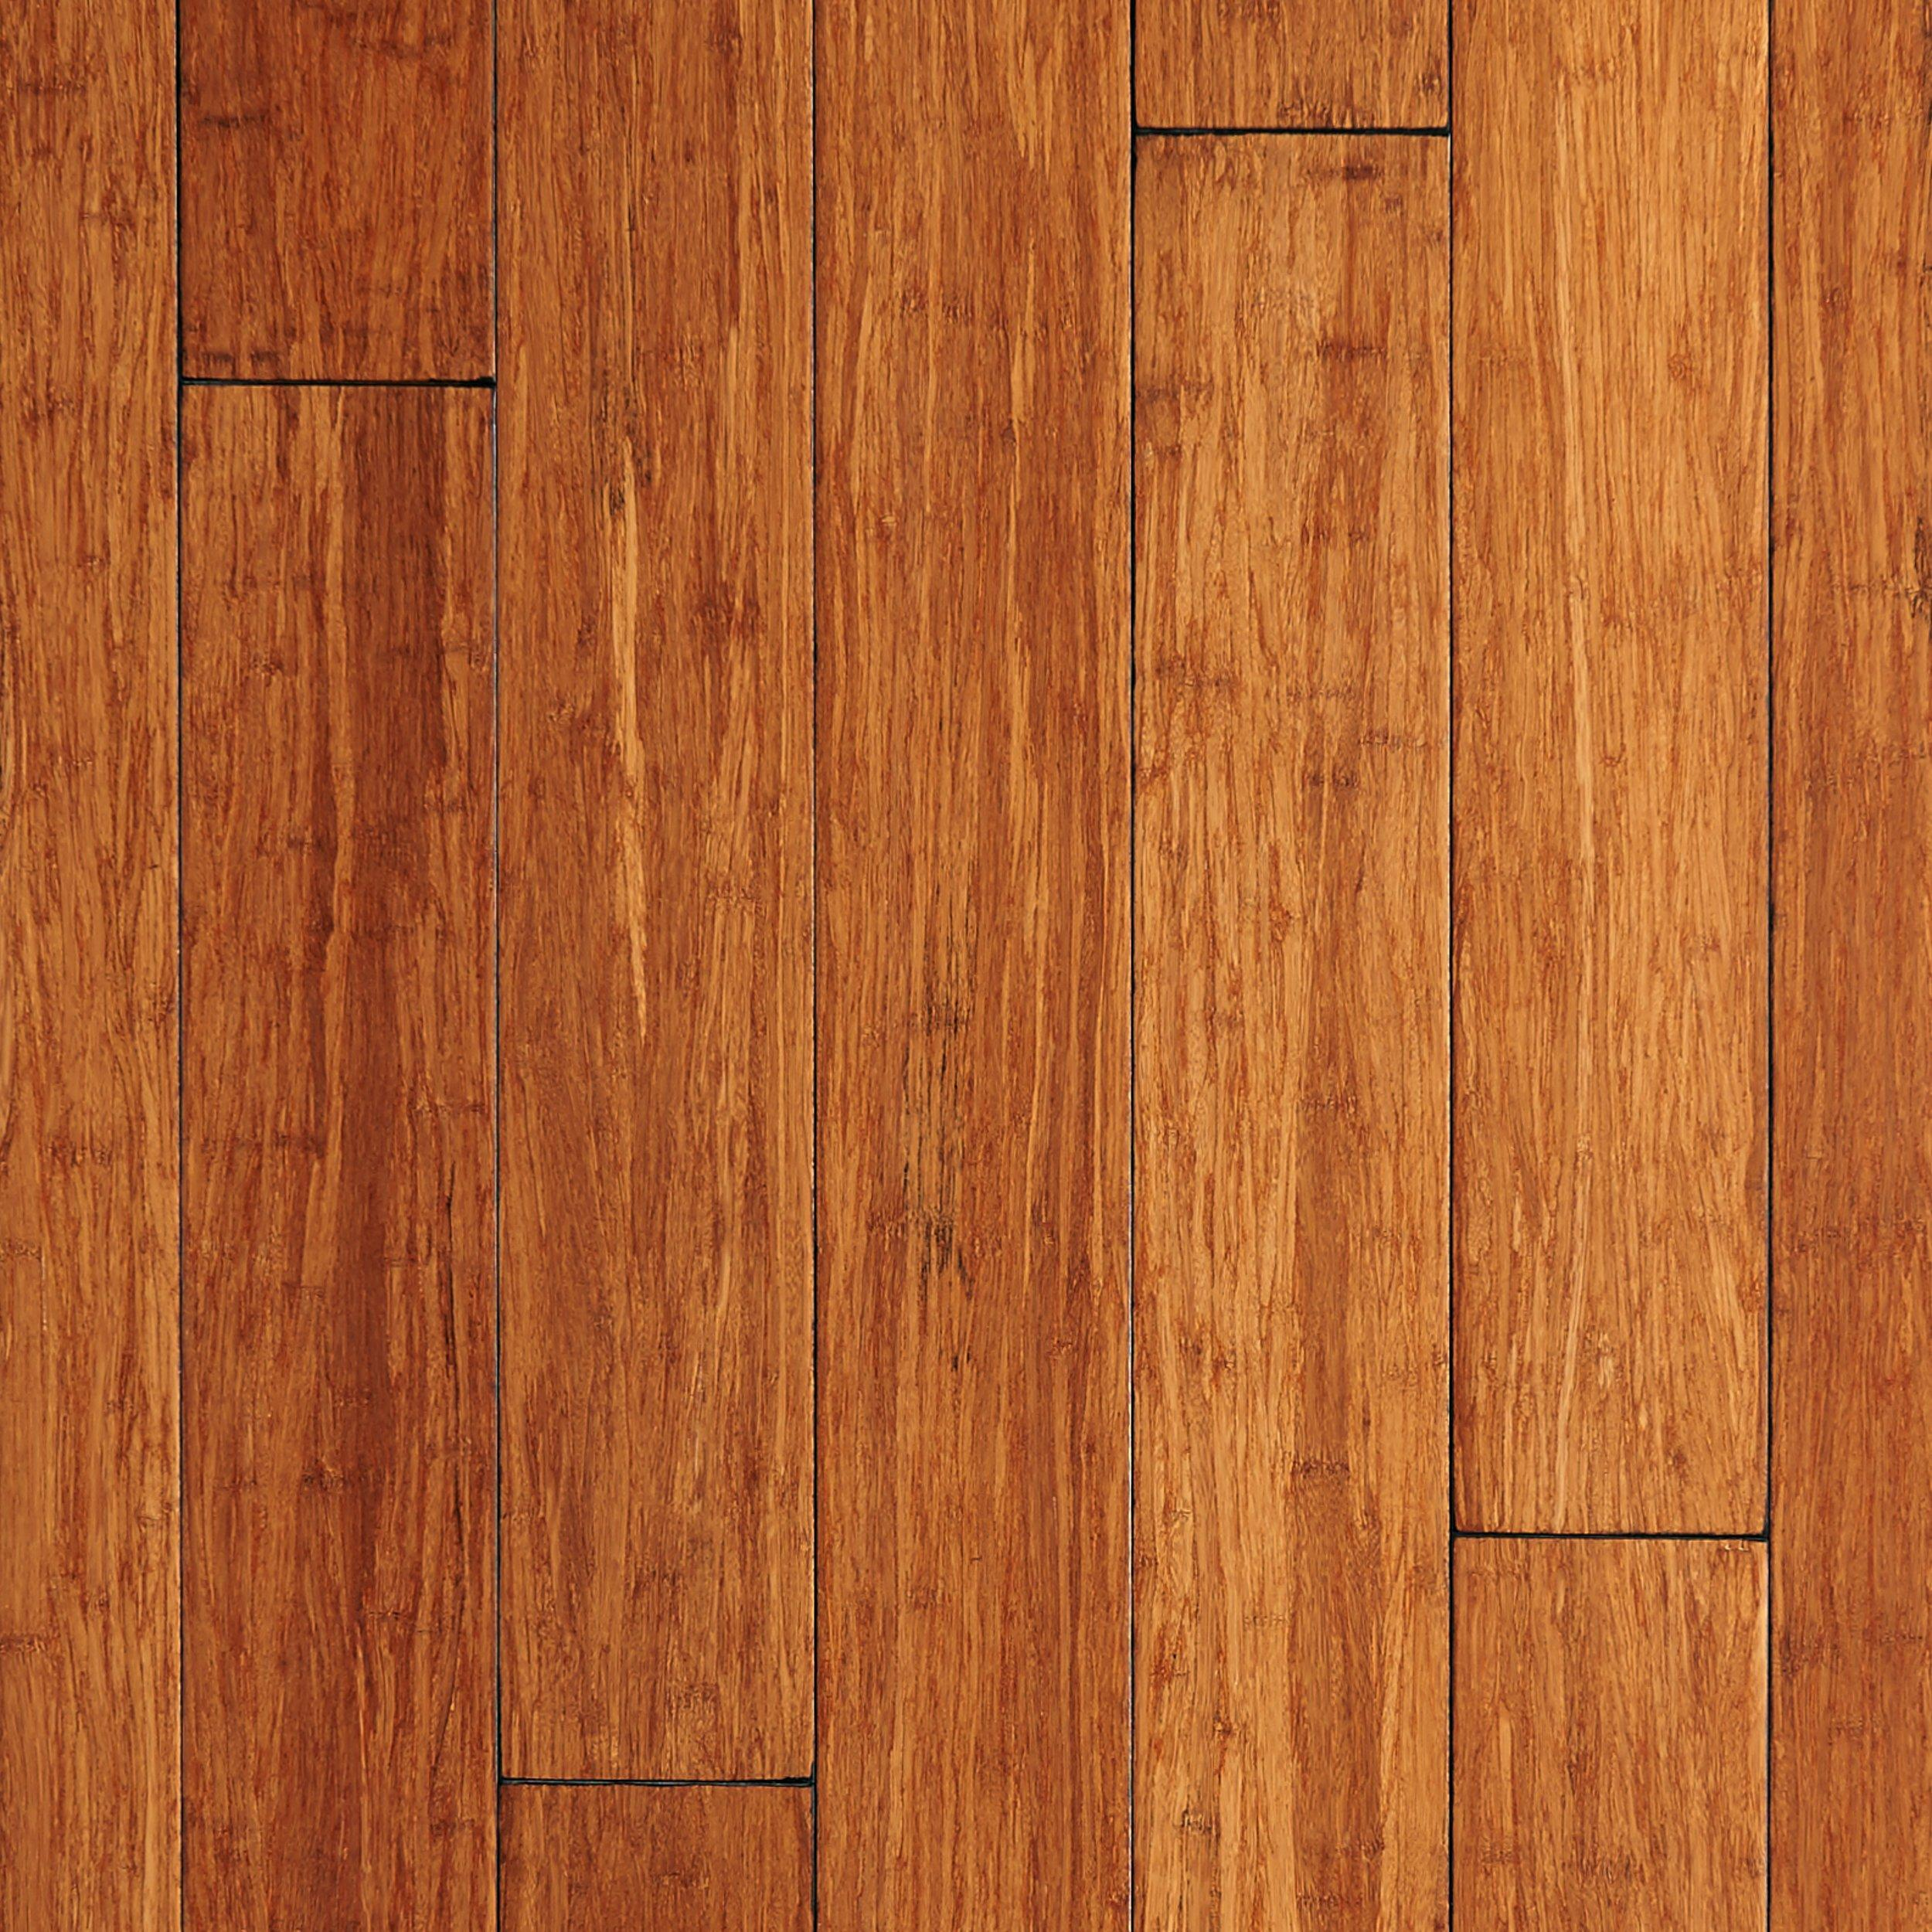 ecoforest patina hand scraped solid stranded bamboo 12in x 5in floor and decor - Bamboo Wood Flooring